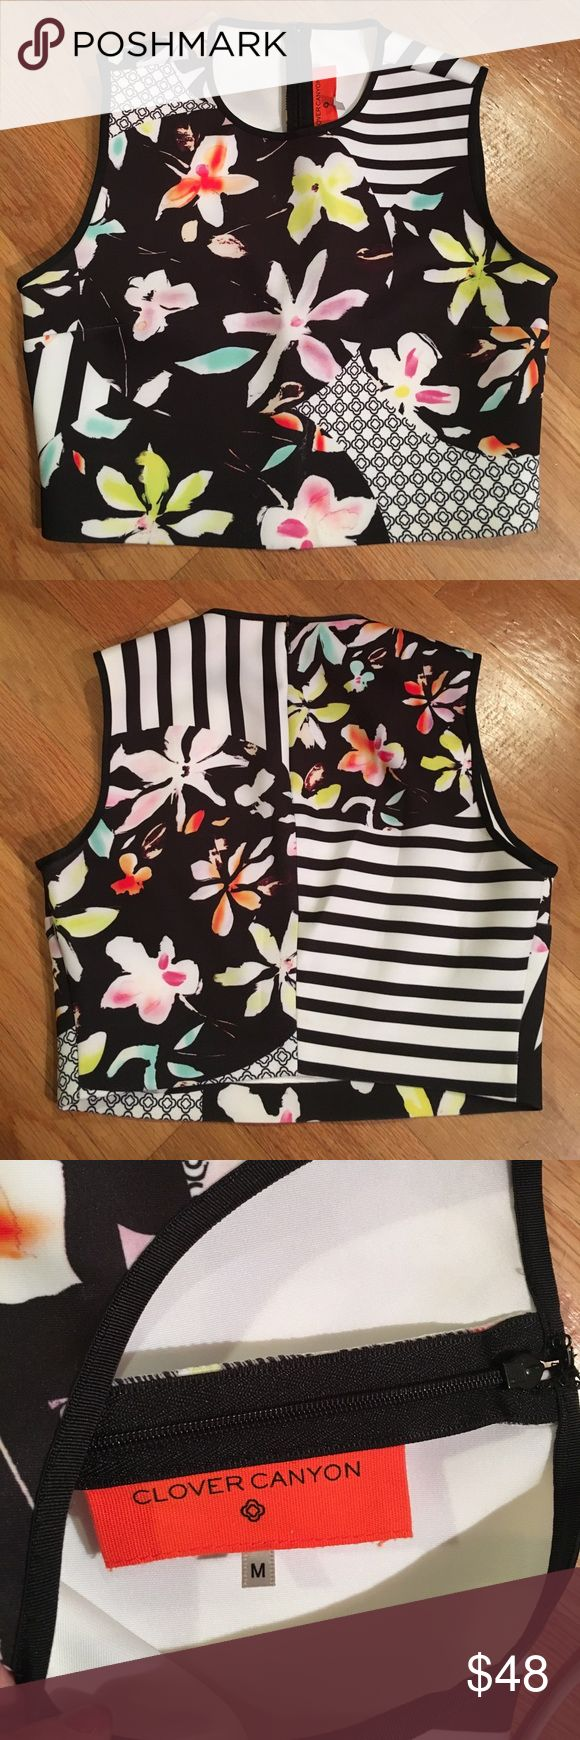 Clover Canyon Crop Top Clover Canyon Crop Top. Size medium. Black and white abstract print with pink, yellow, purple, orange flowers. Back zipper with top hook and eye closure. Excellent used condition! Clover Canyon Tops Crop Tops